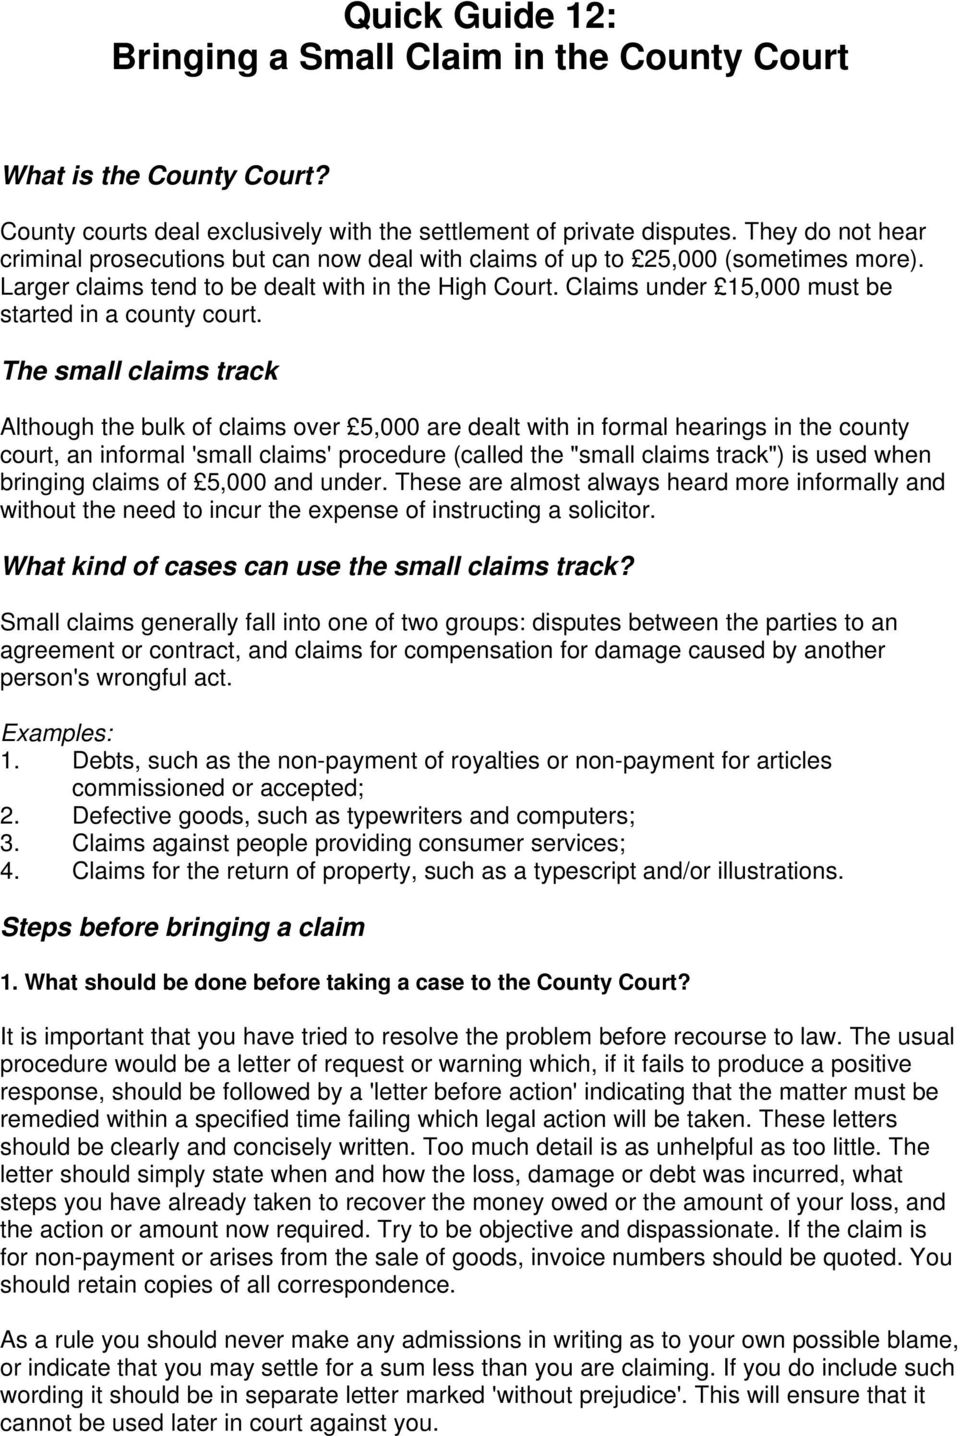 Claims under 15,000 must be started in a county court.